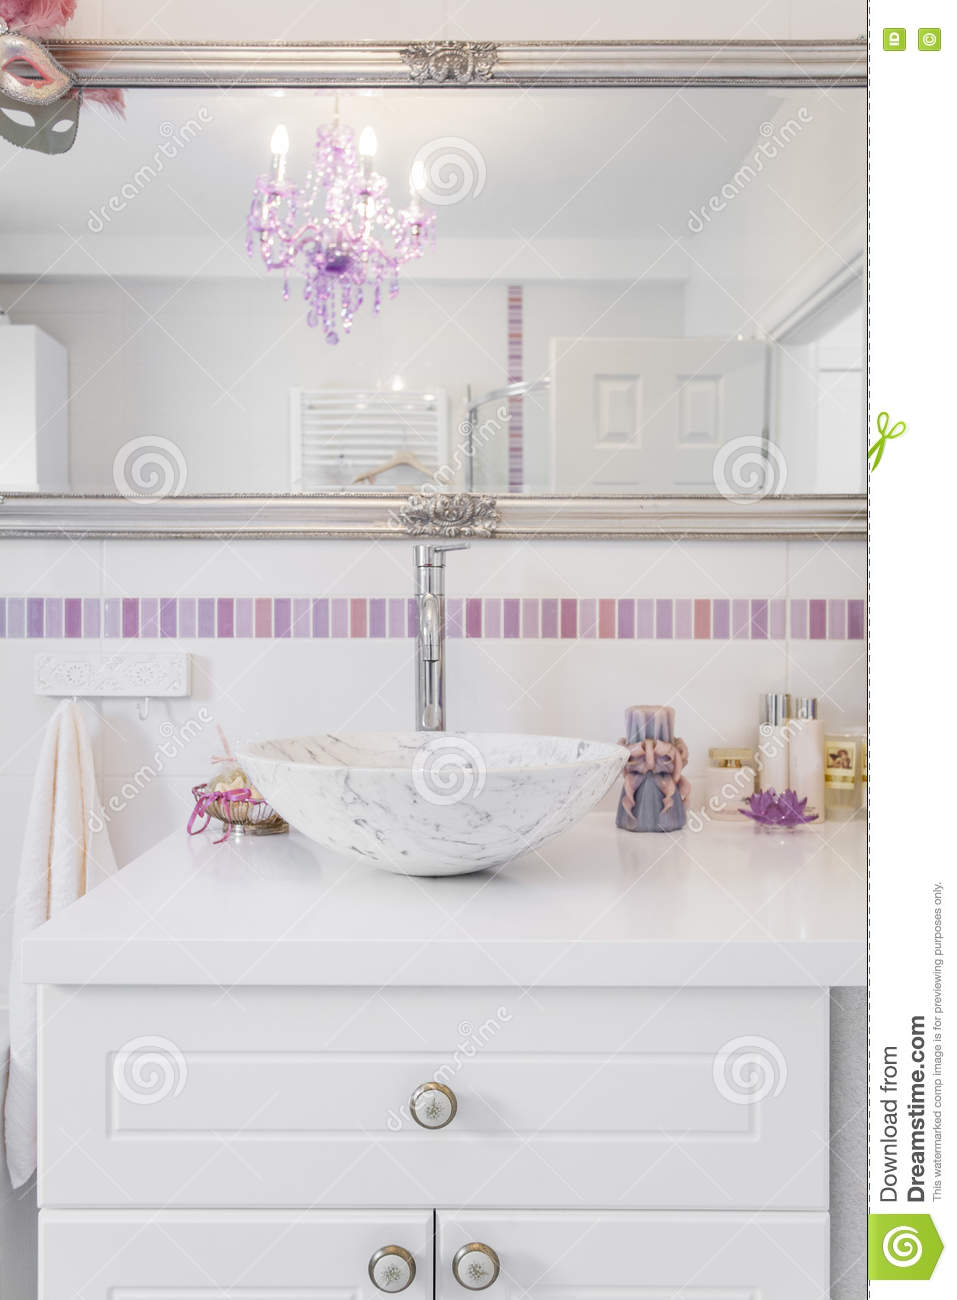 Romantic retro bathroom stock image. Image of lamp, healthy - 78463391